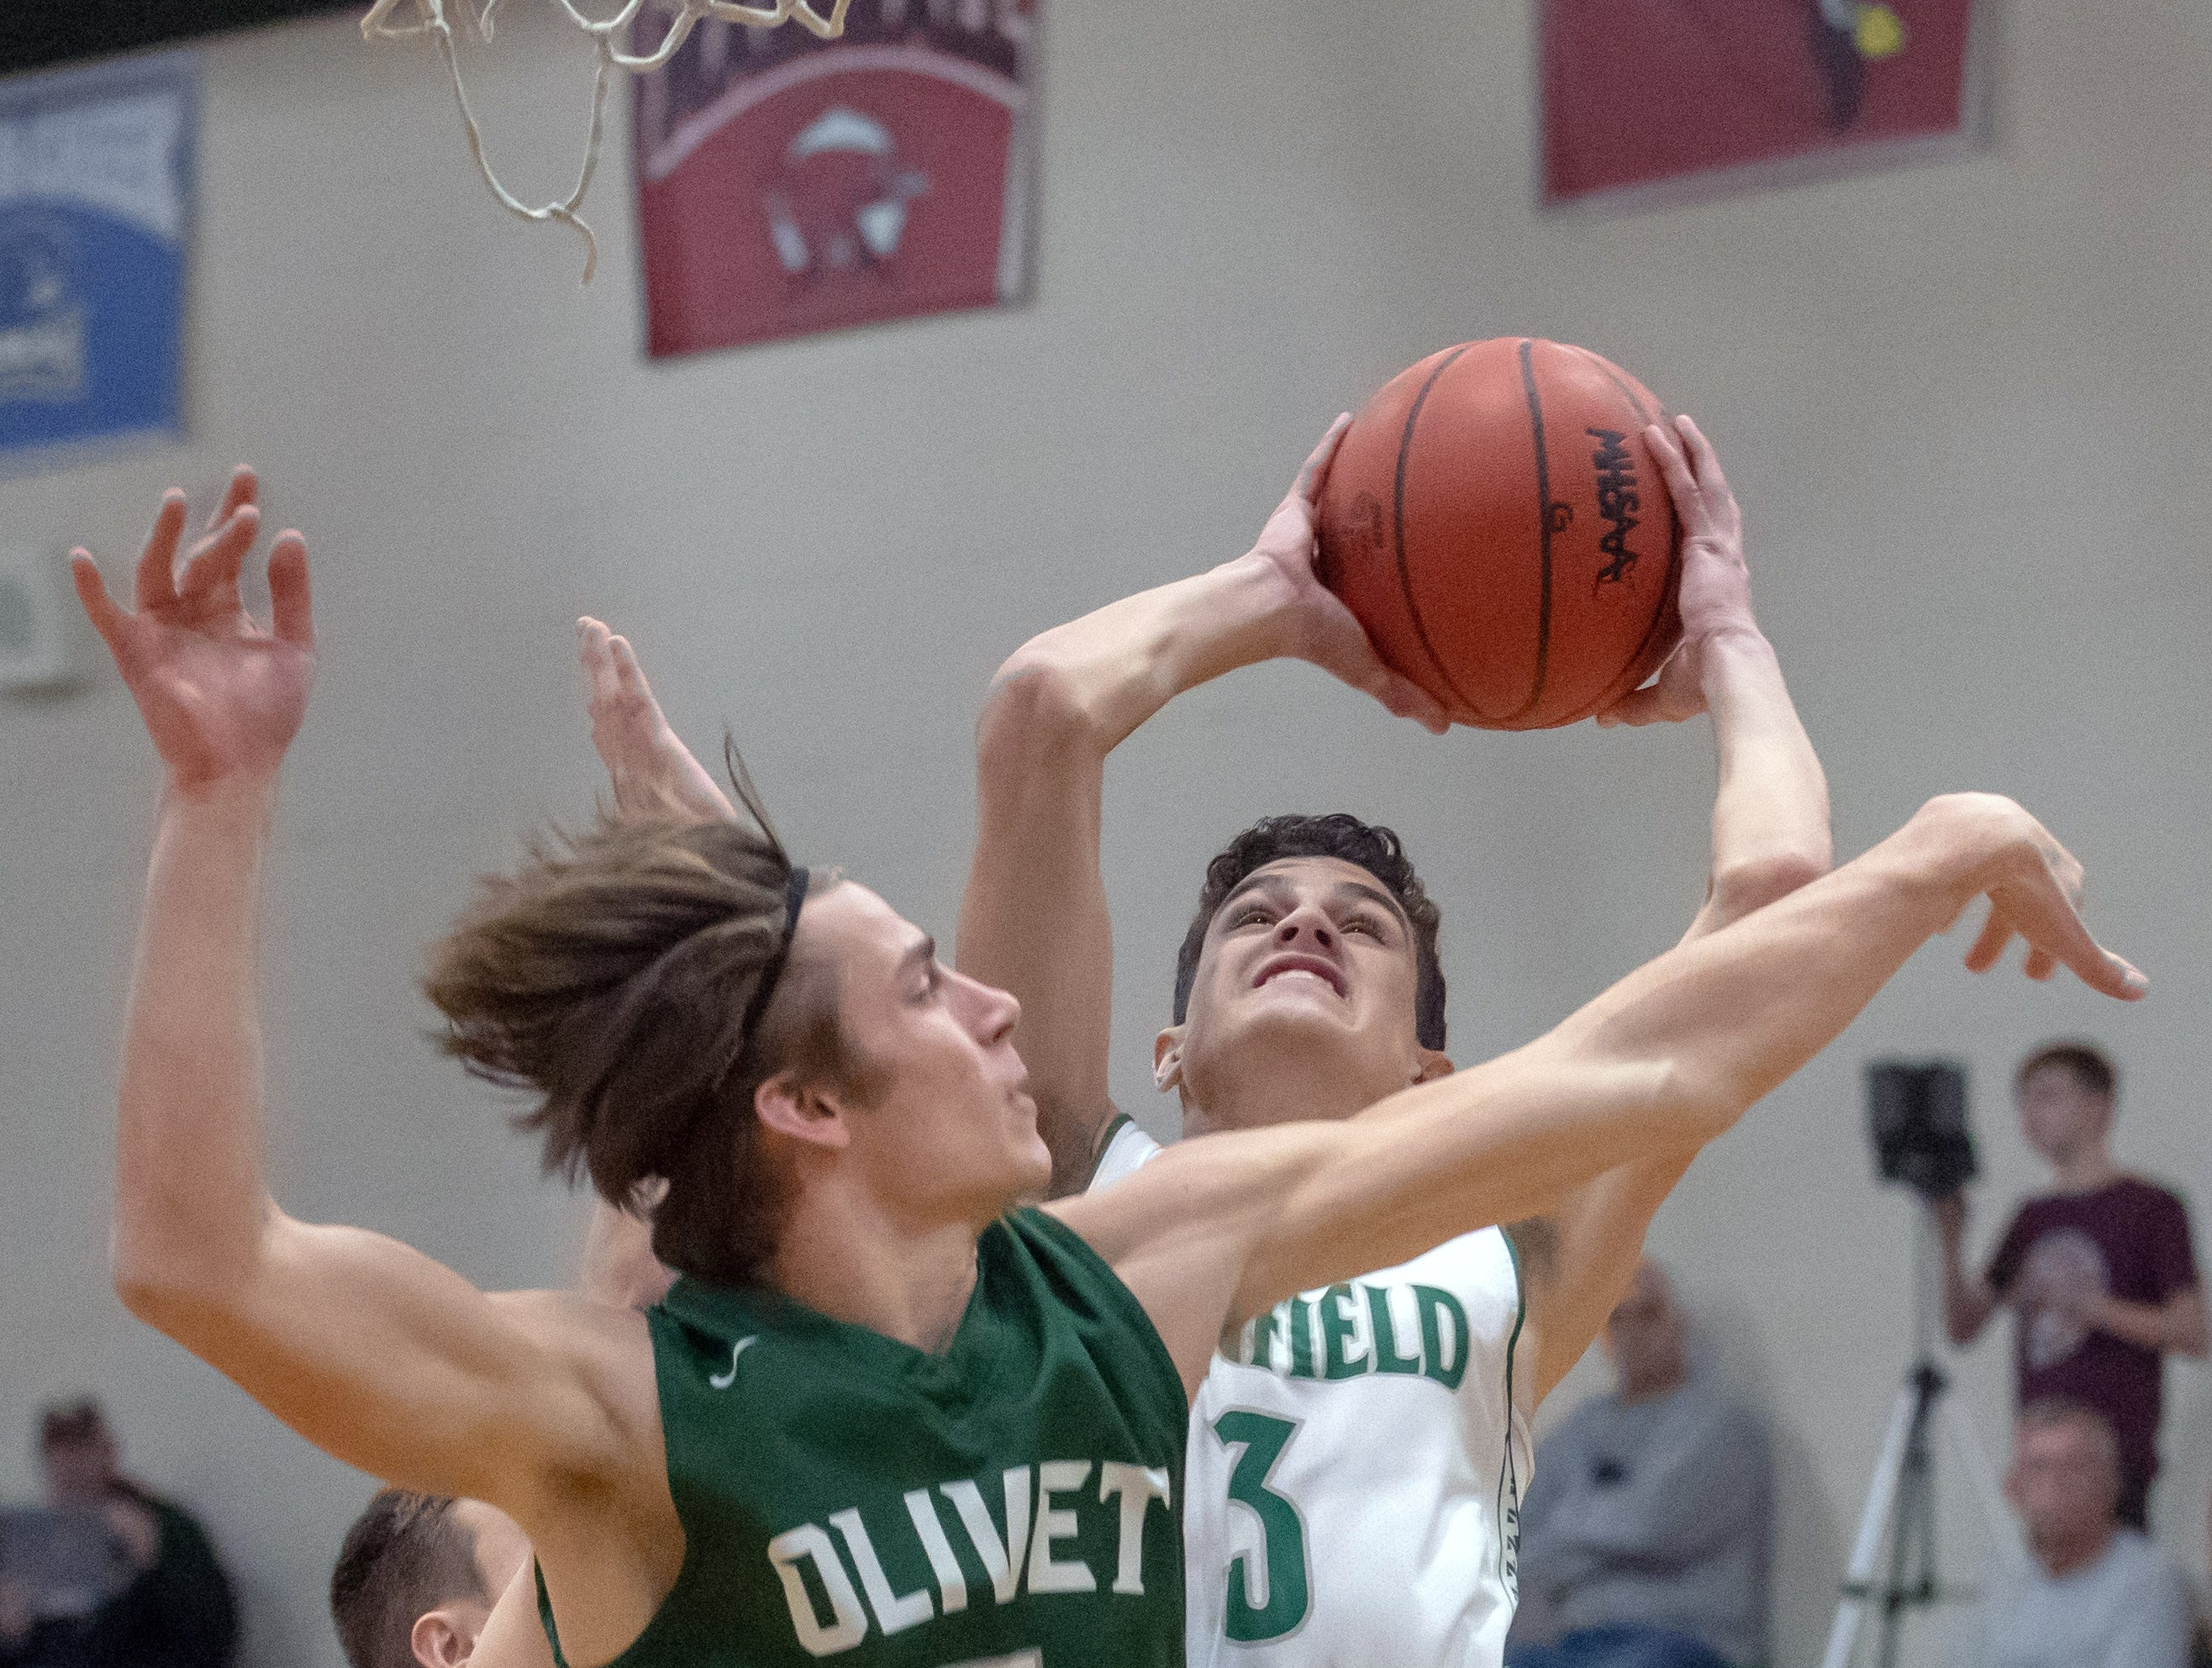 Pennfield's Gavin Liggett (3) gets past a Olivet defender as he tries for two points during game action Tuesday night.